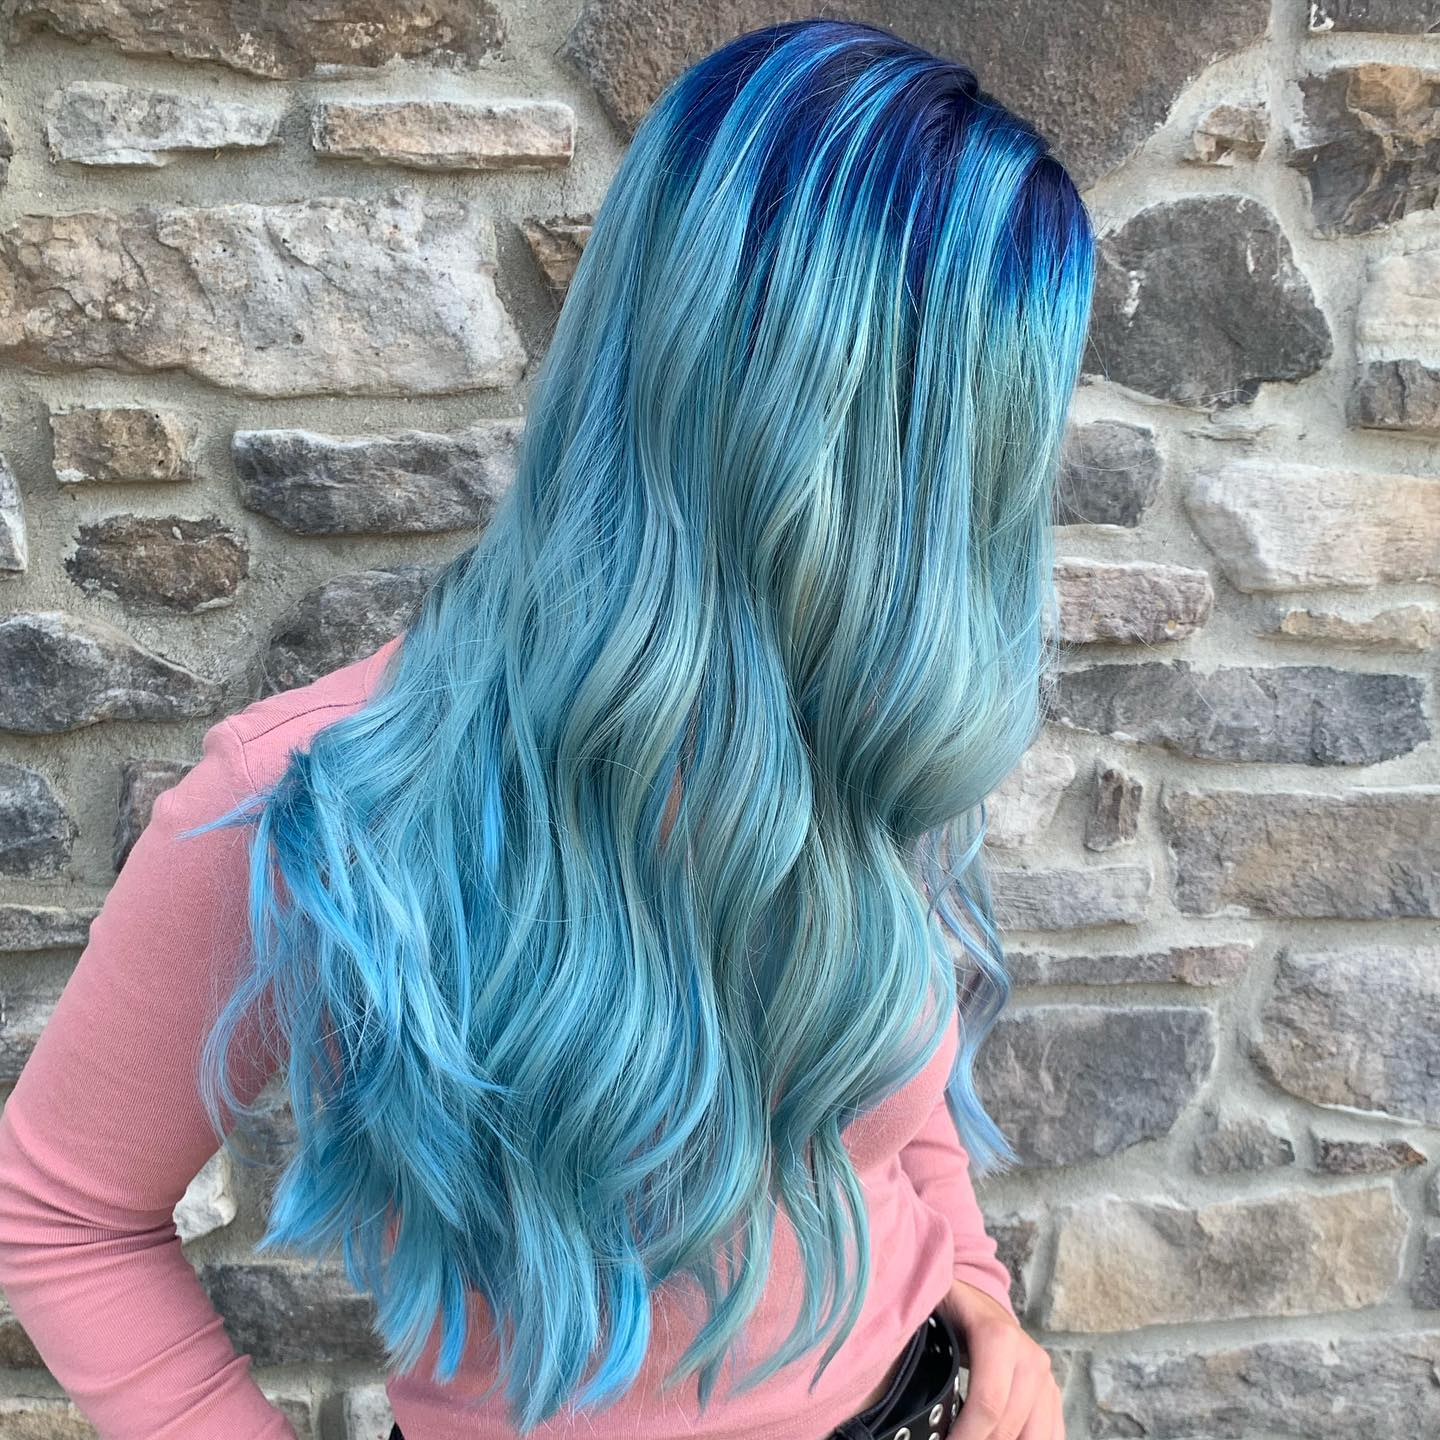 Falling for Uniquely Colored Hair